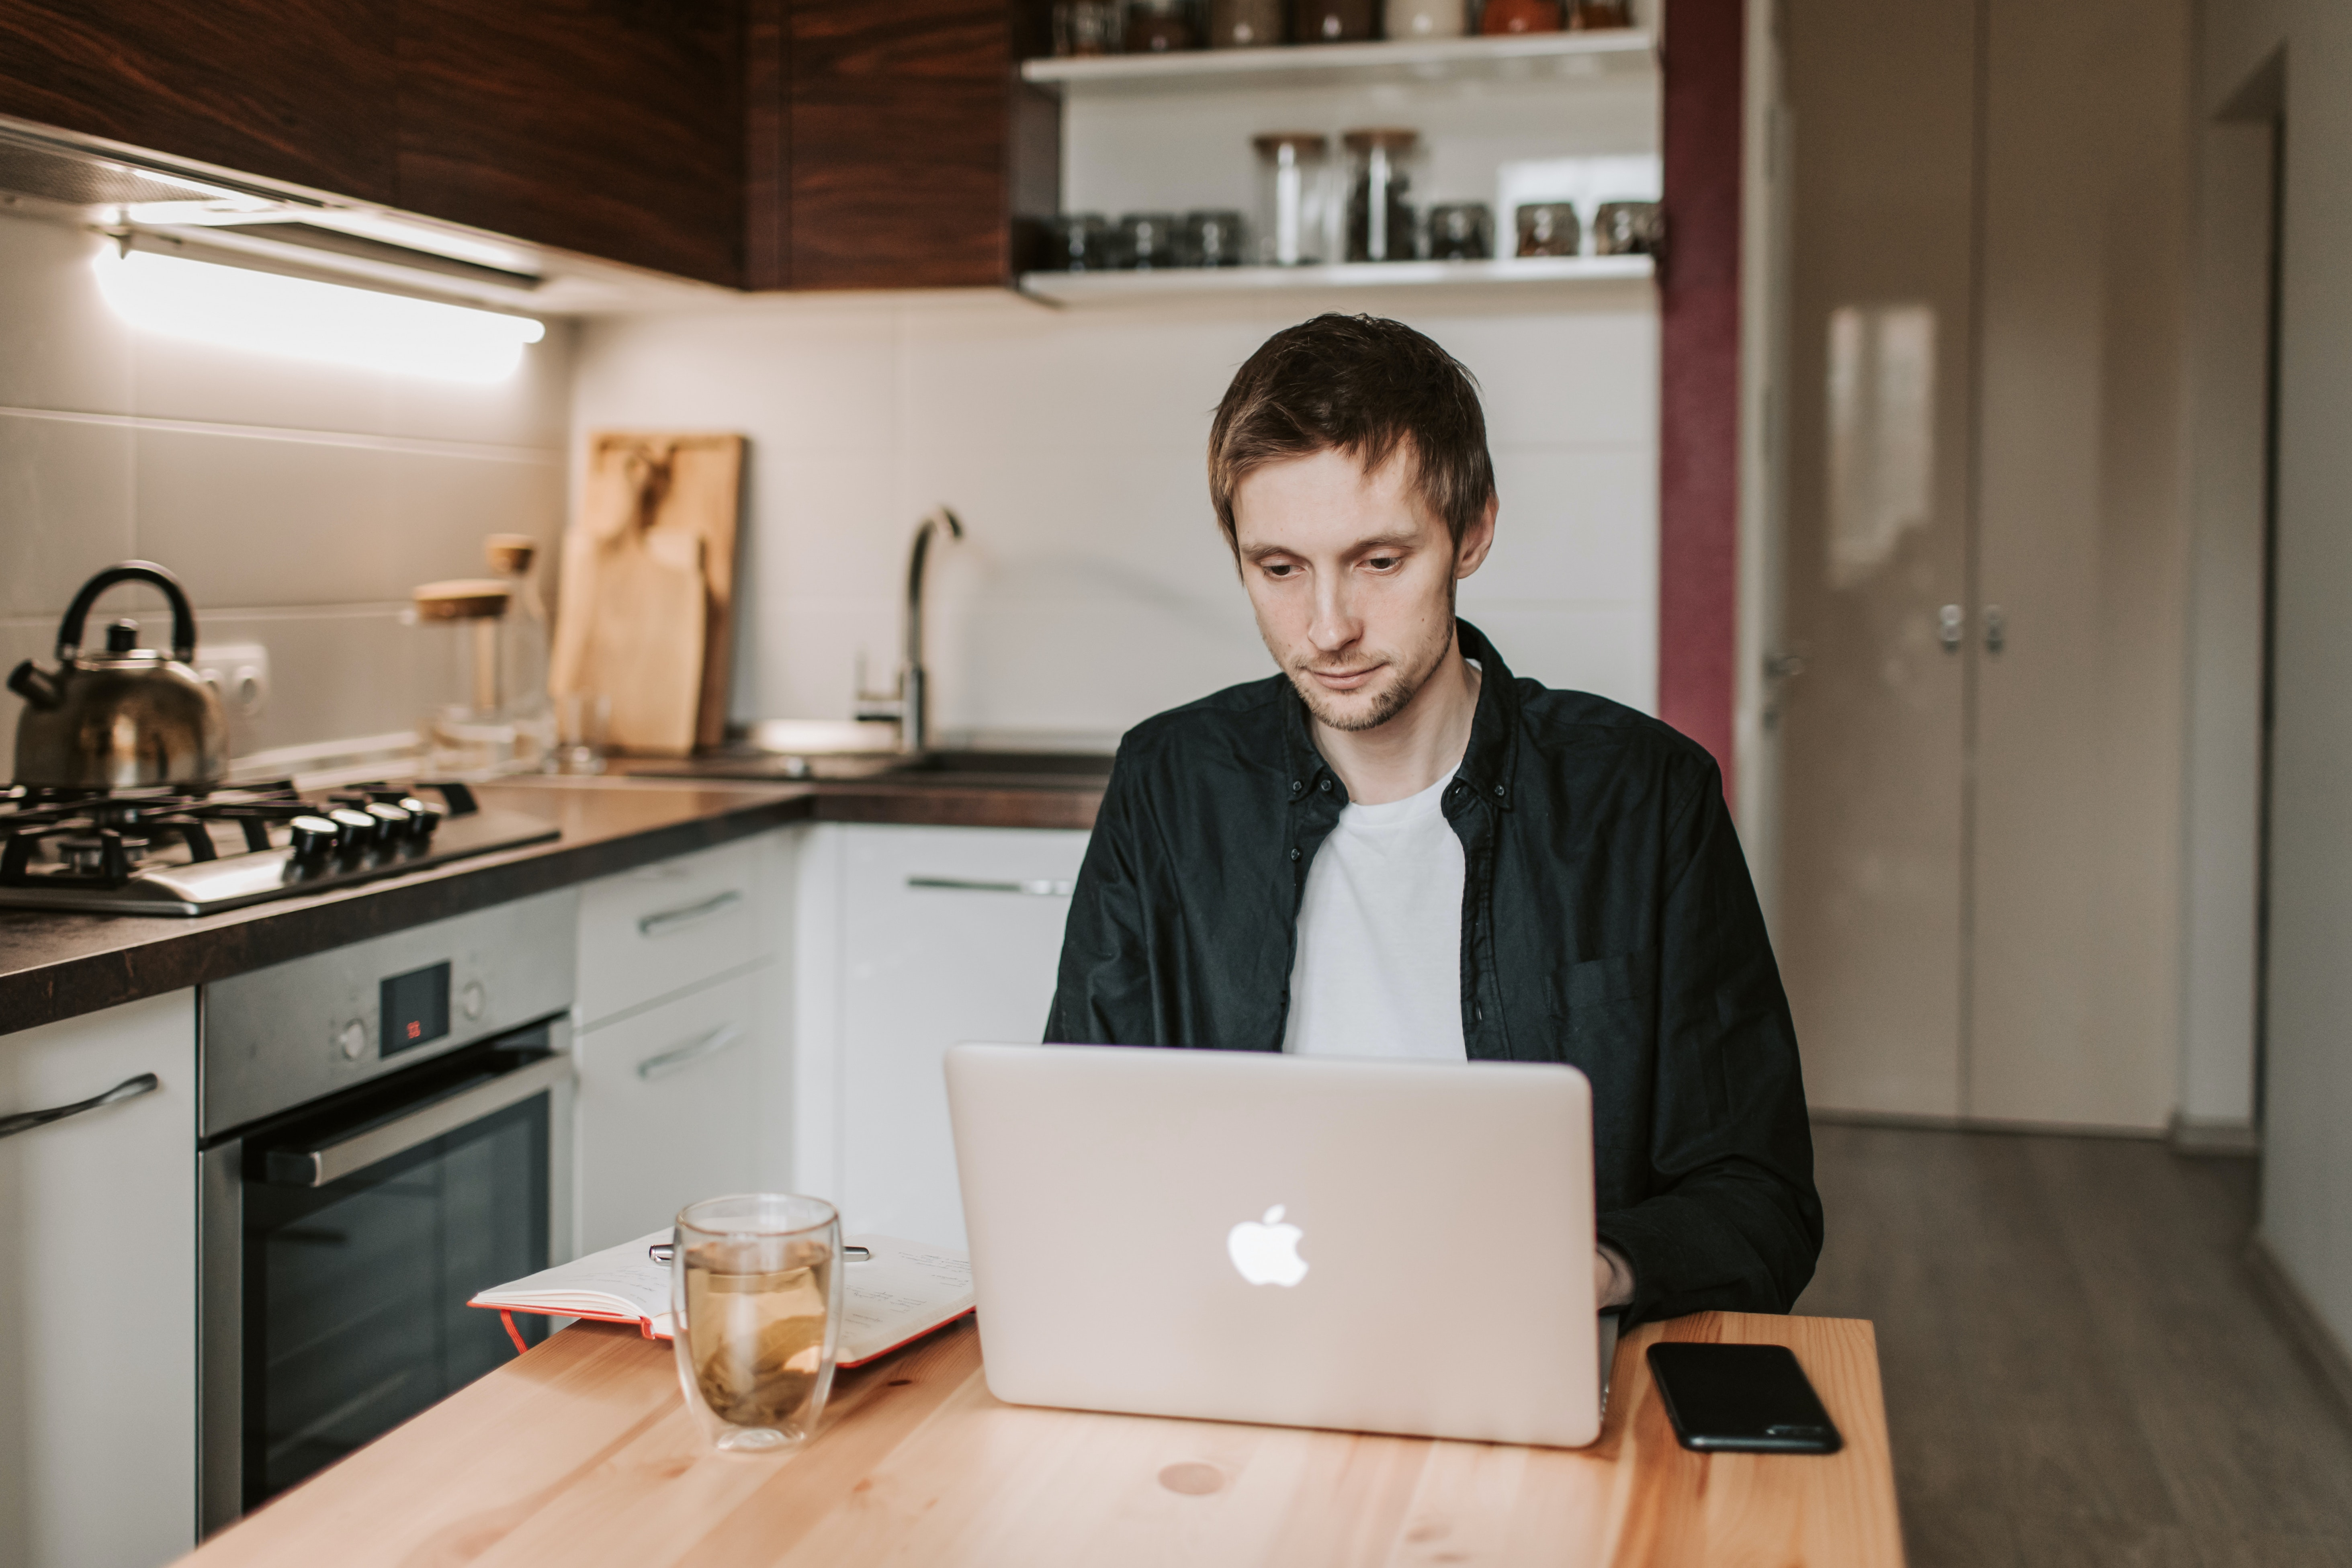 life tips remote work from home kitchen laptop